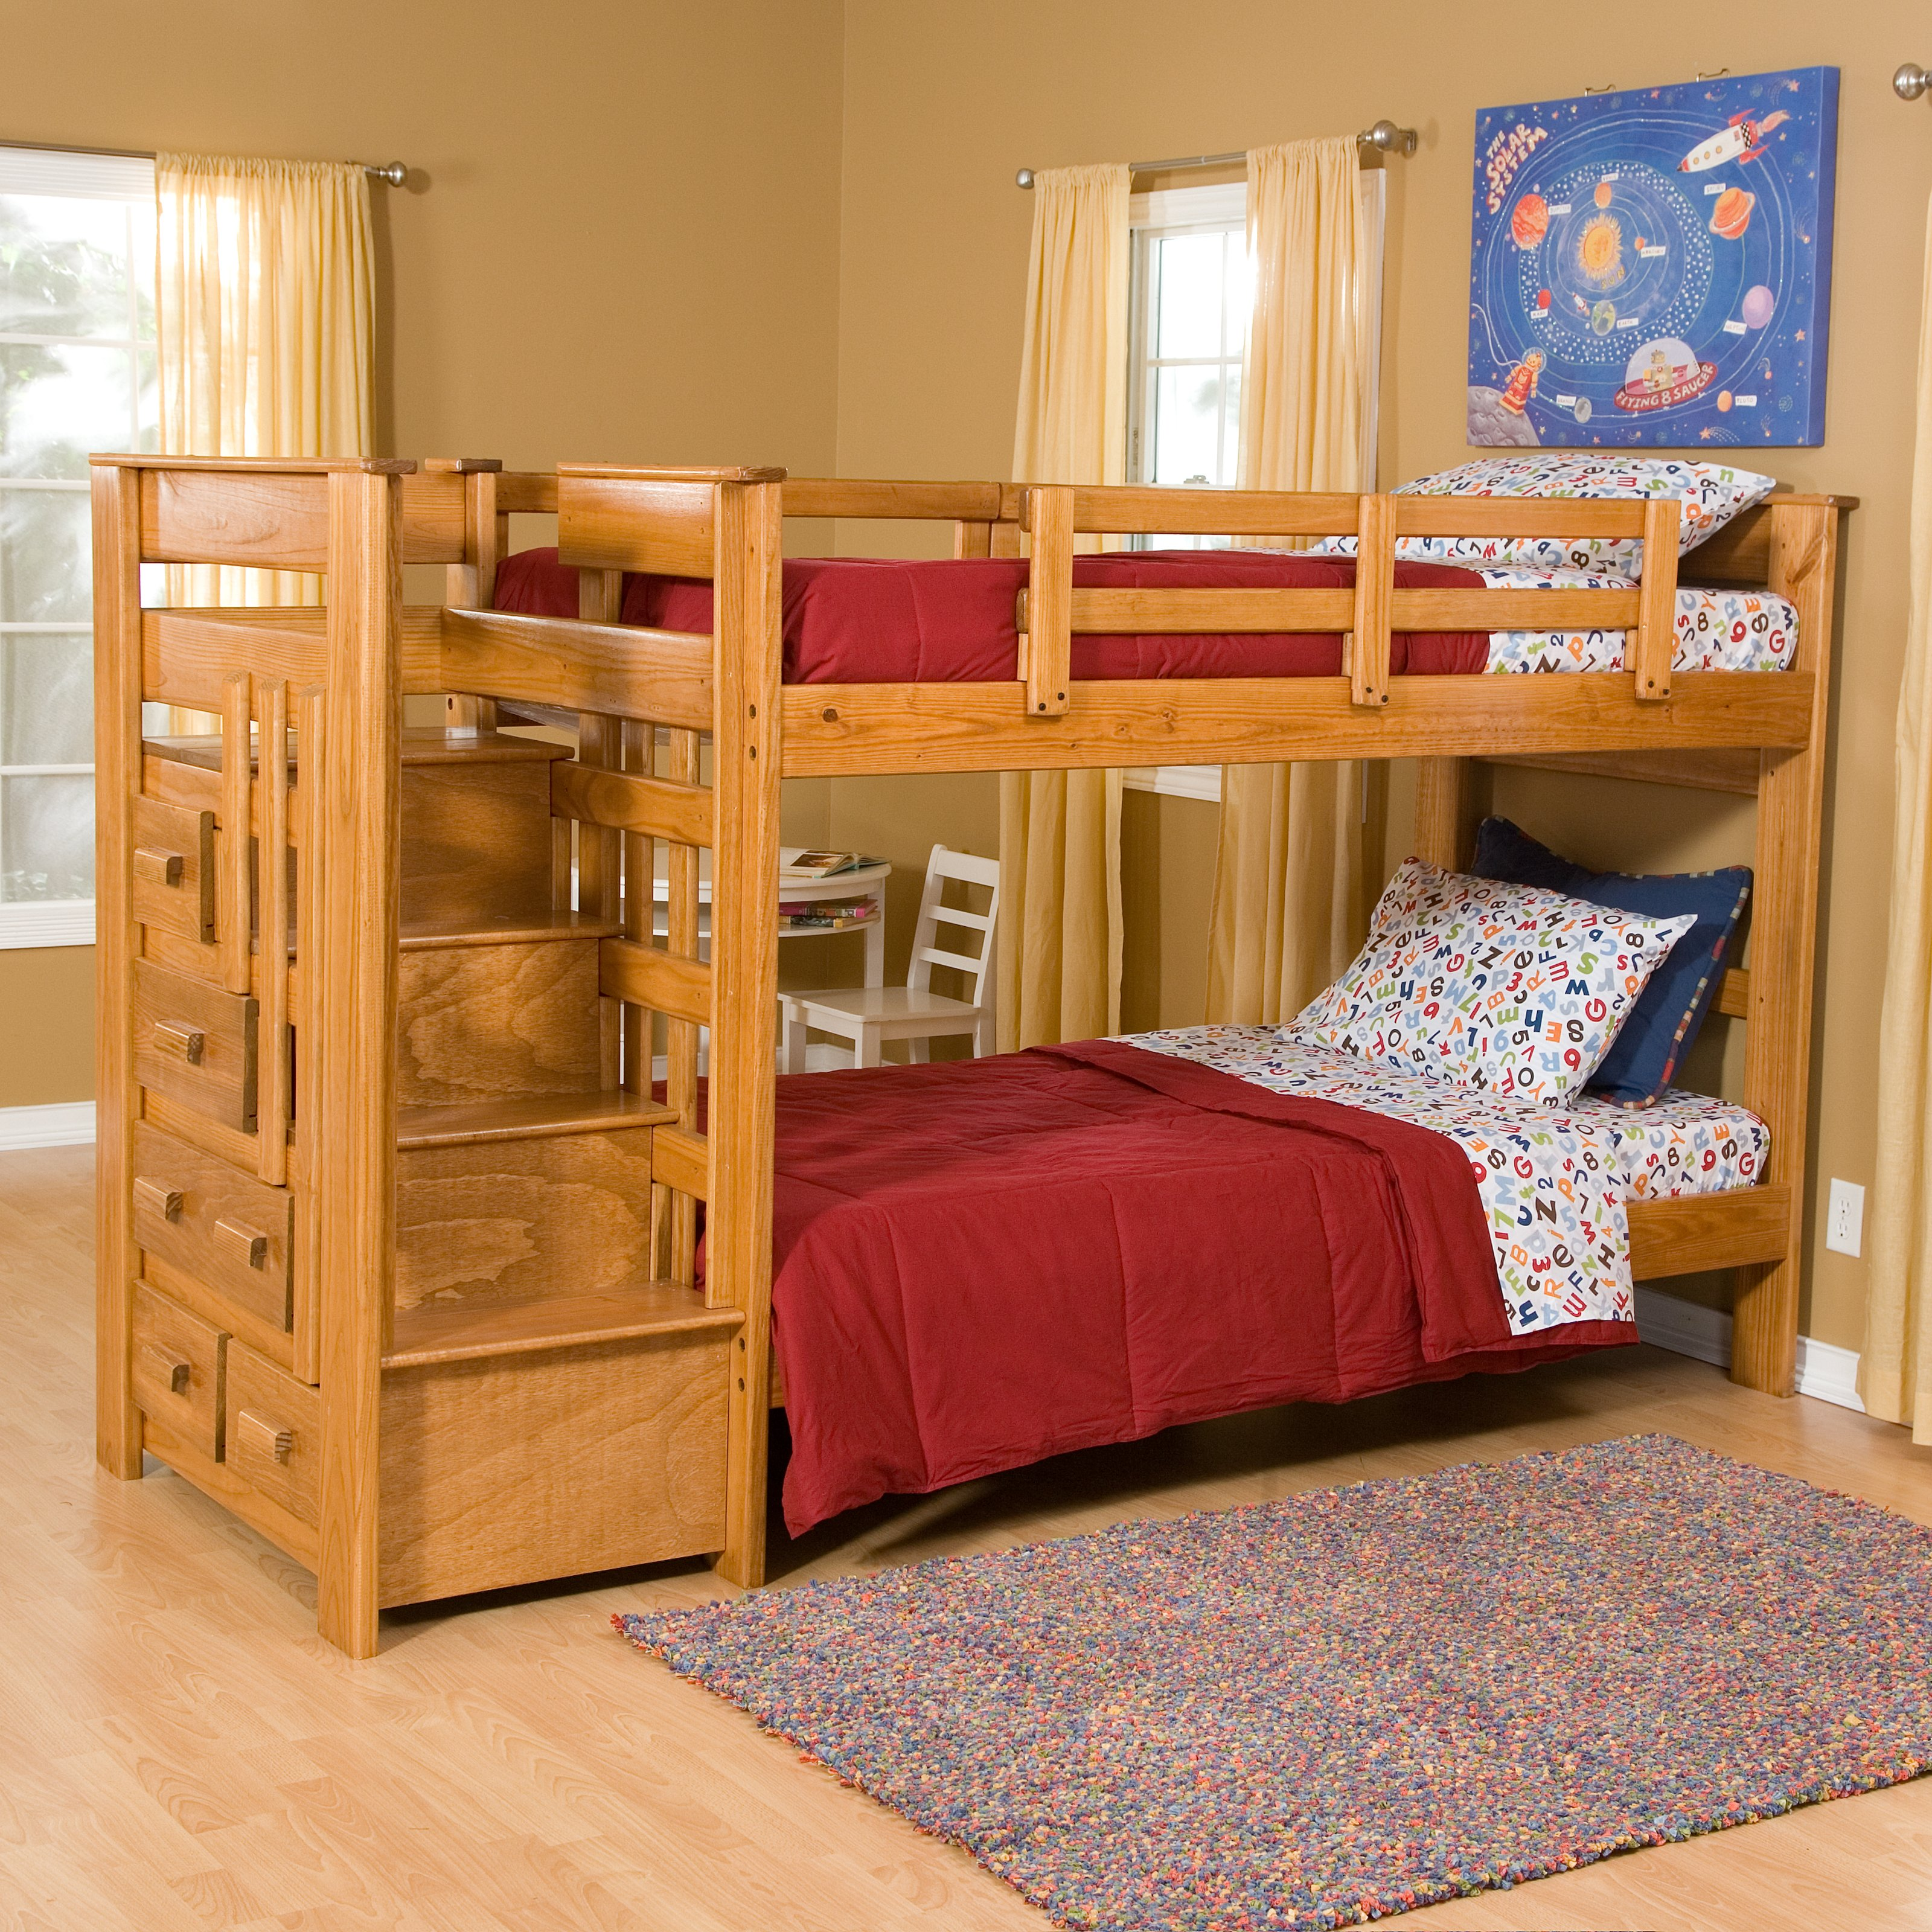 Bunk Bed Plans : Build Your Personal Bunk Bed – How To Do It | BED ...